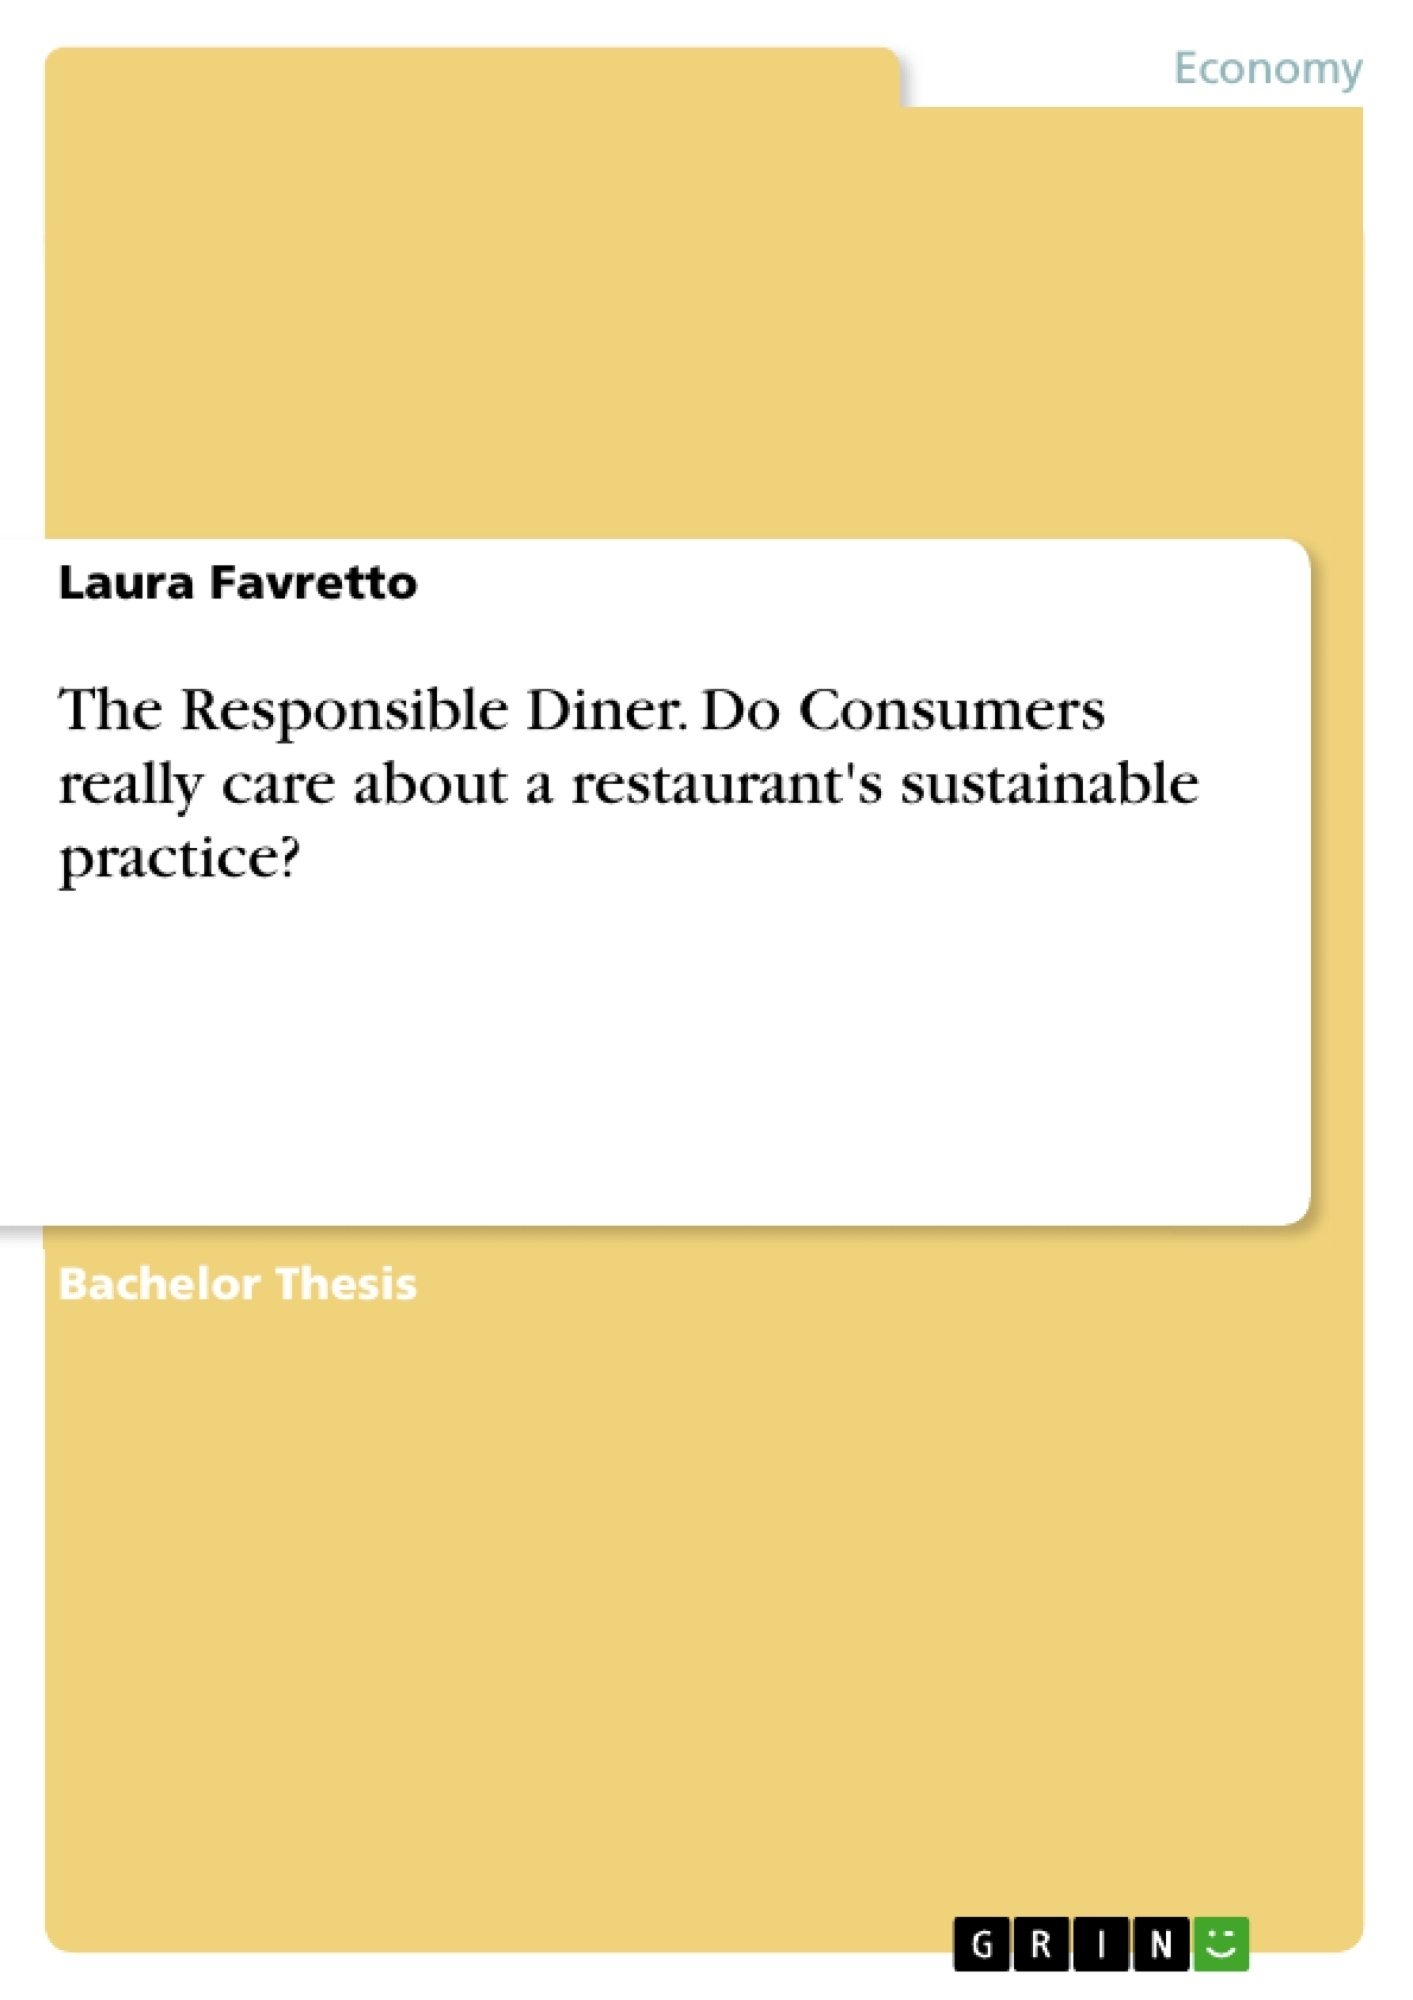 Title: The Responsible Diner. Do Consumers really care about a restaurant's sustainable practice?